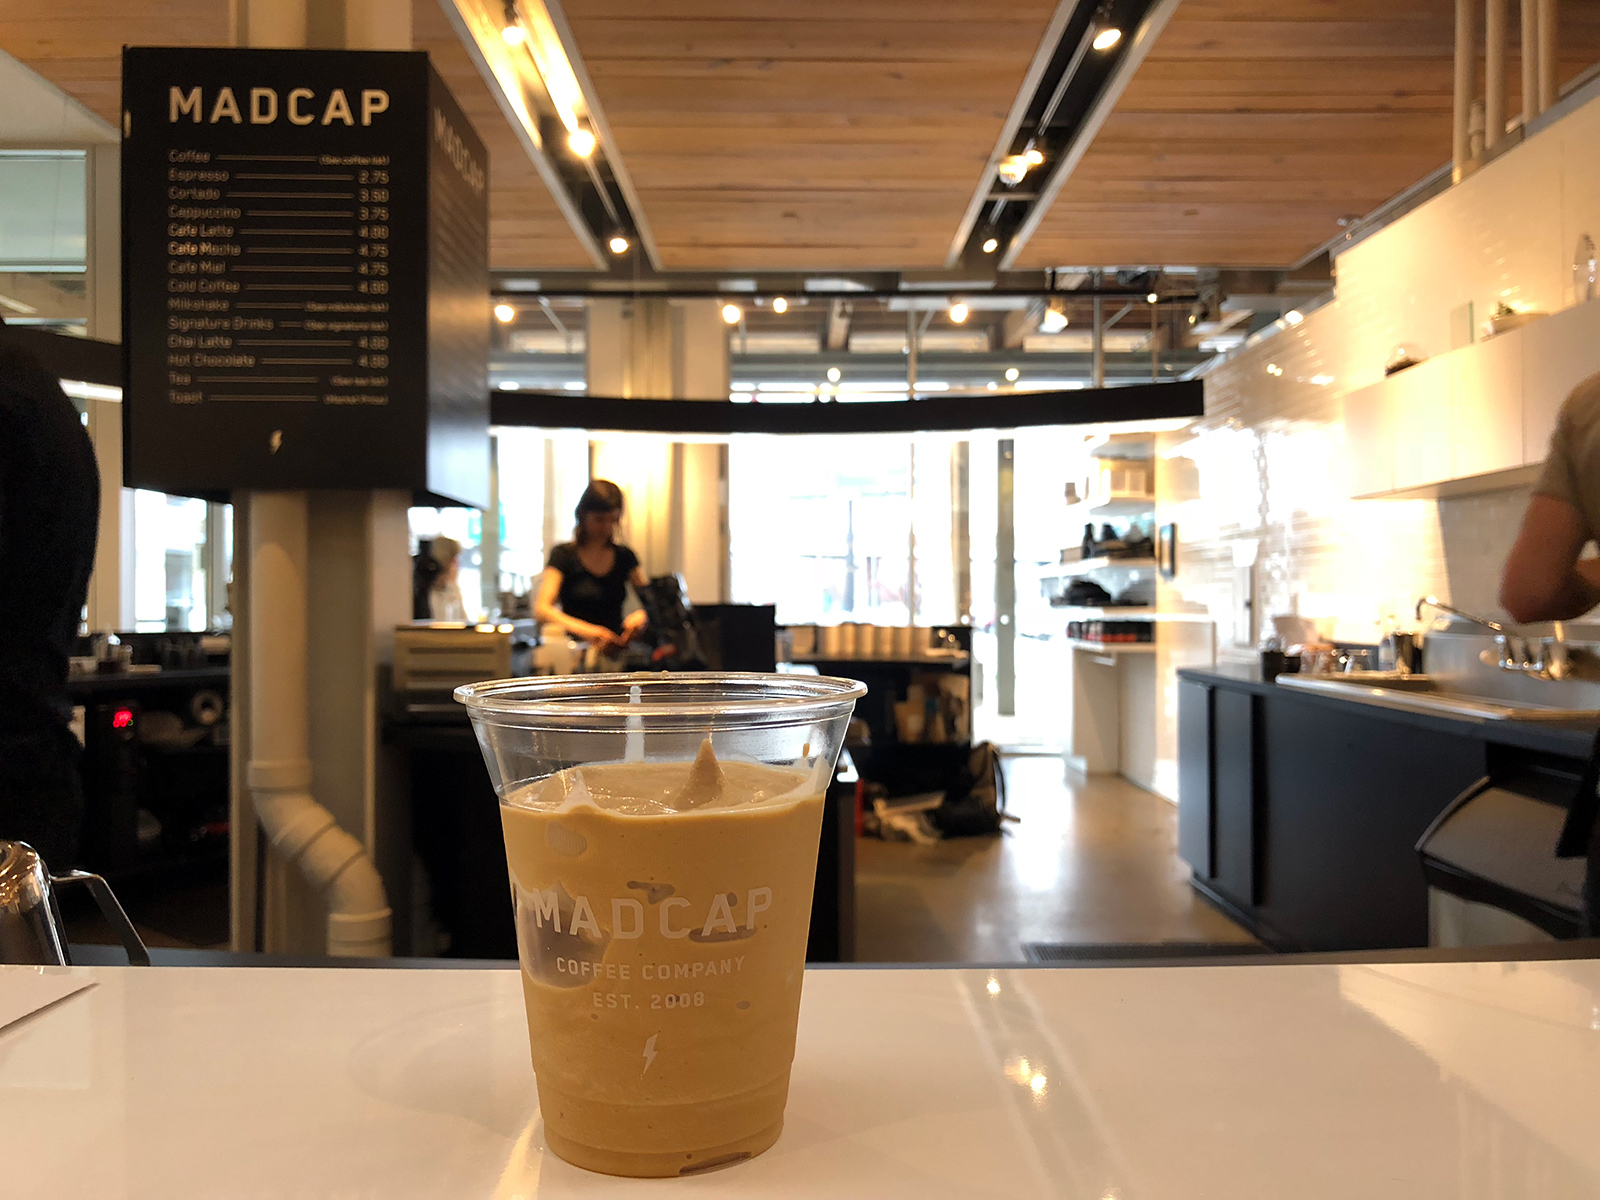 Madcap Coffee in Grand Rapids, MI by Jets Like Taxis